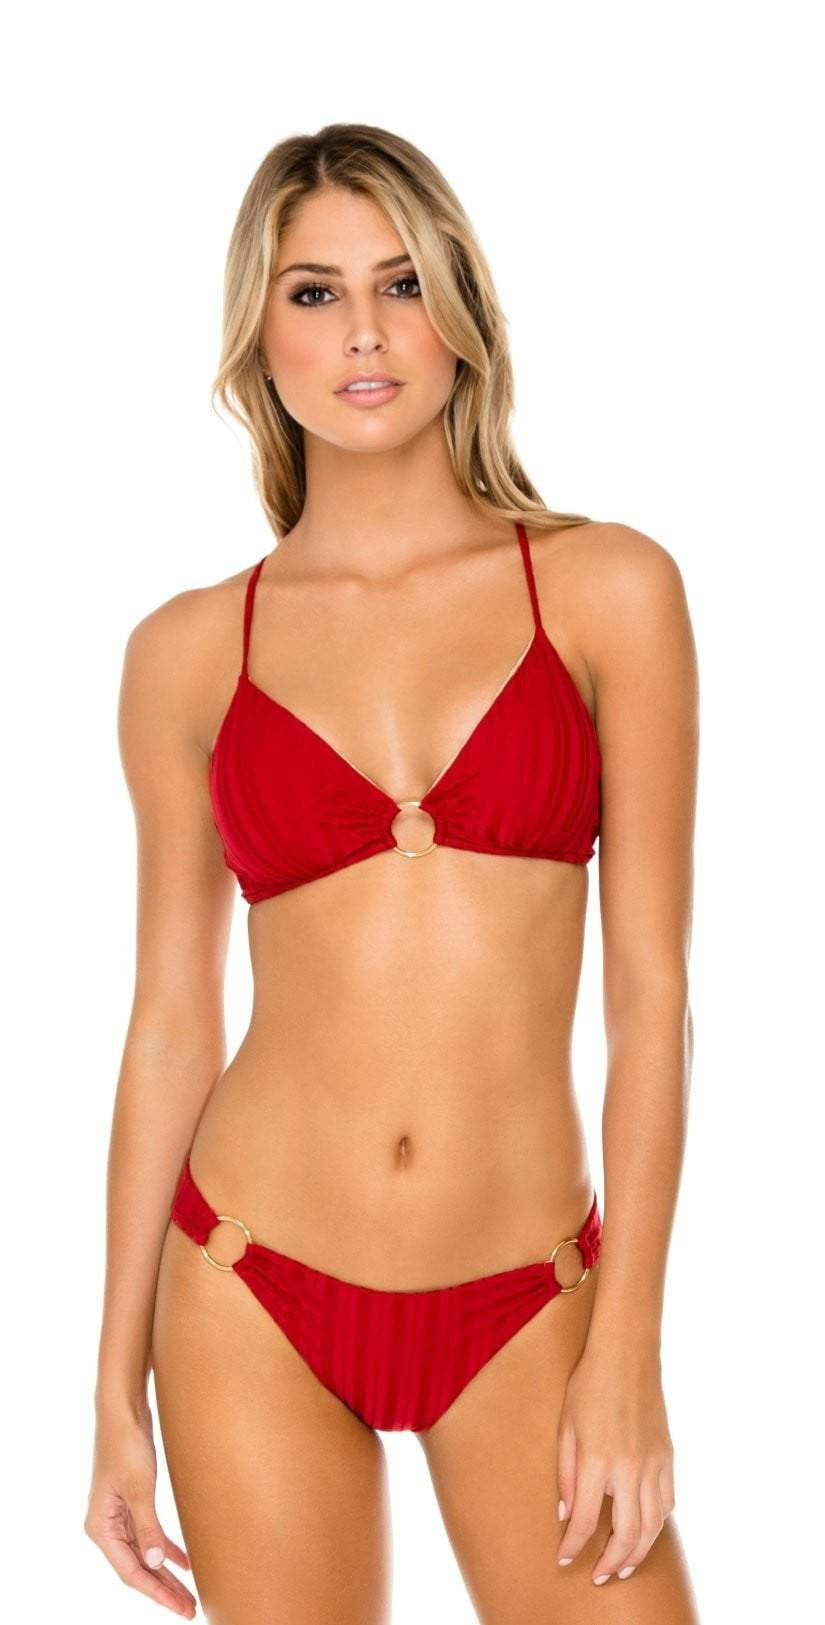 Luli Fama Turi Turai Ring Side Full Bottom in Red L581N36 475: